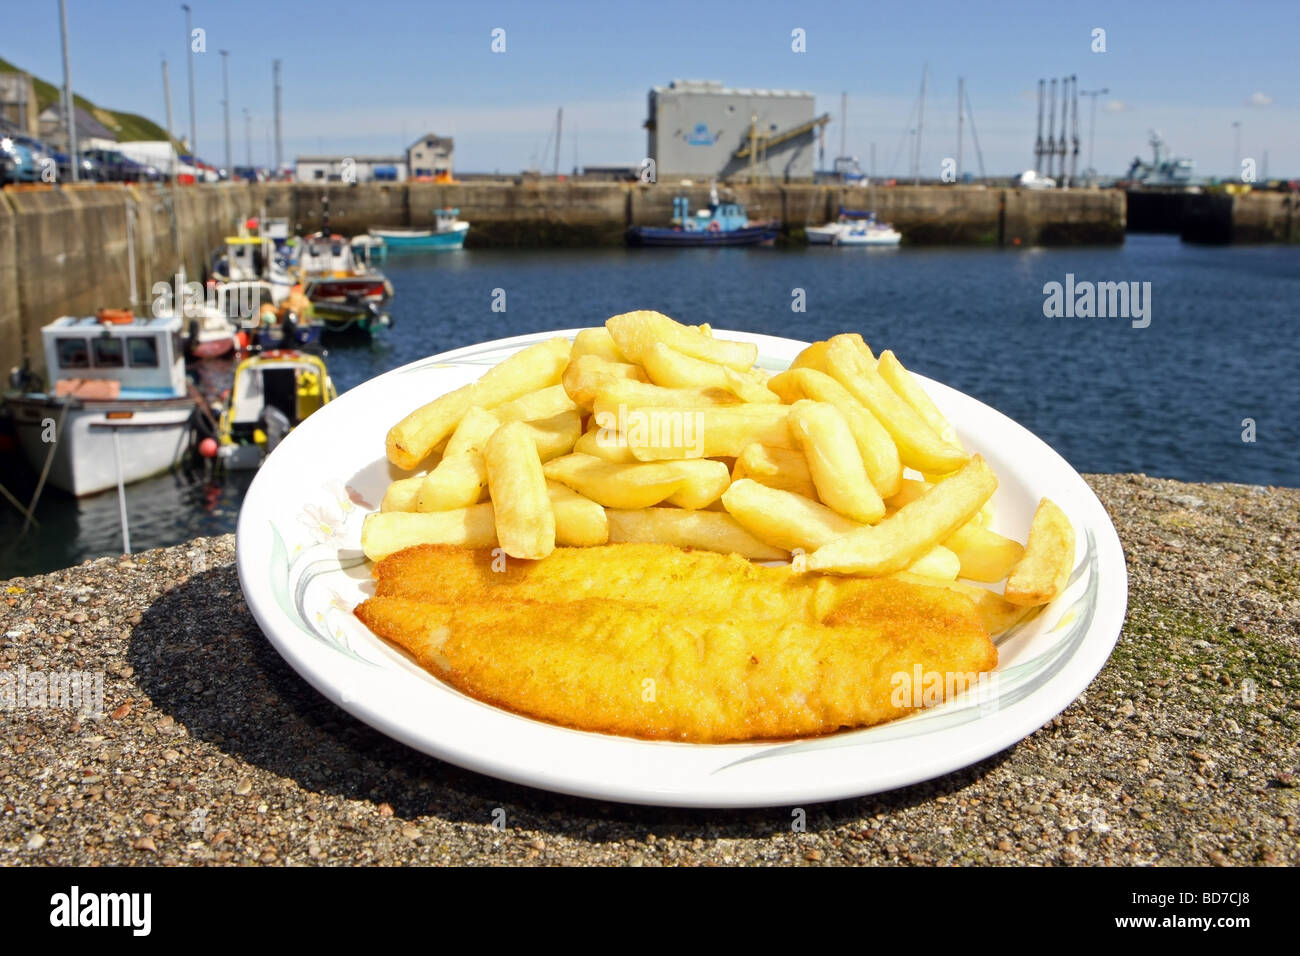 A plate of traditional british fish and chips on the harbour side at Scrabster, Scotland, UK - Stock Image